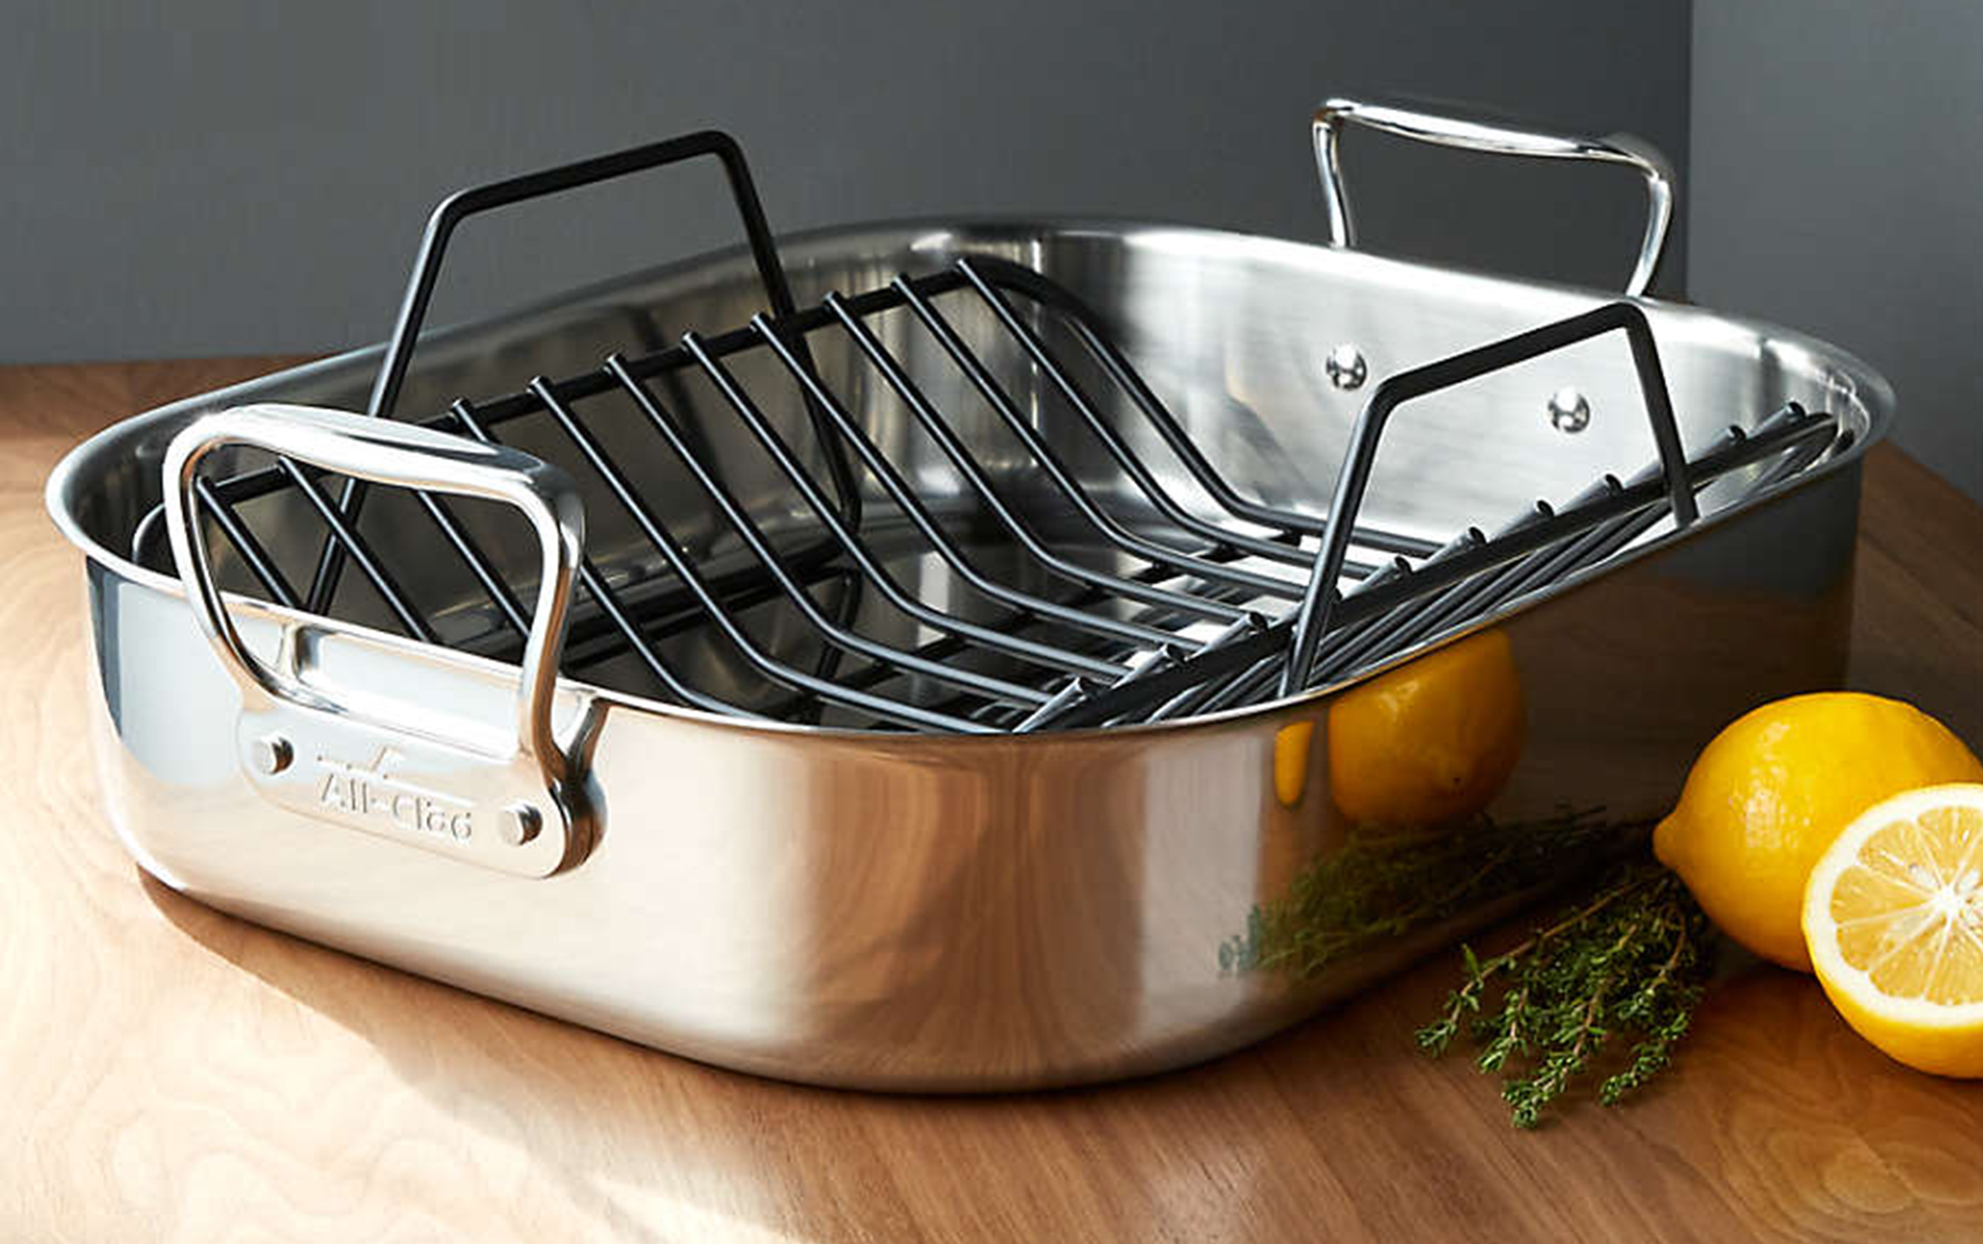 All-Clad Stainless Steel Large Roaster on a wooden surface